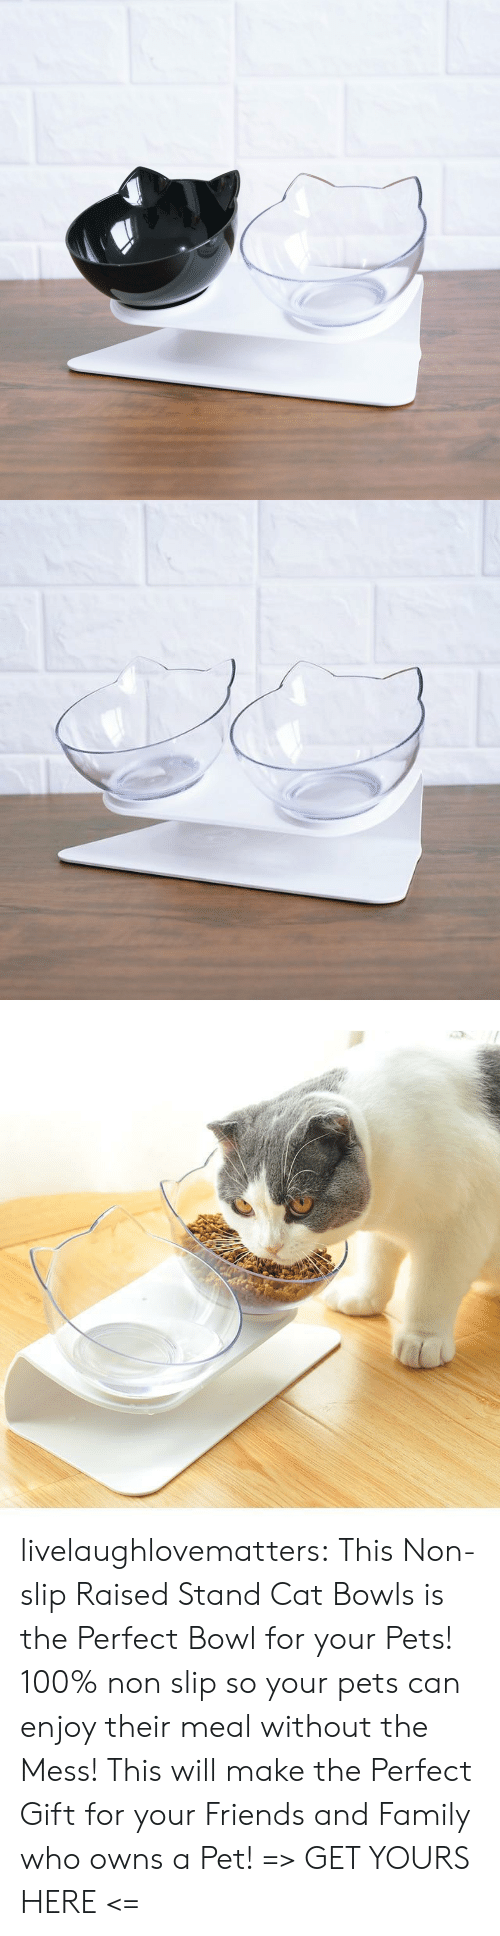 slip: livelaughlovematters: ThisNon-slip Raised Stand Cat Bowls is the Perfect Bowl for your Pets! 100% non slip so your pets can enjoy their meal without the Mess! This will make the Perfect Gift for your Friends and Family who owns a Pet! => GET YOURS HERE <=